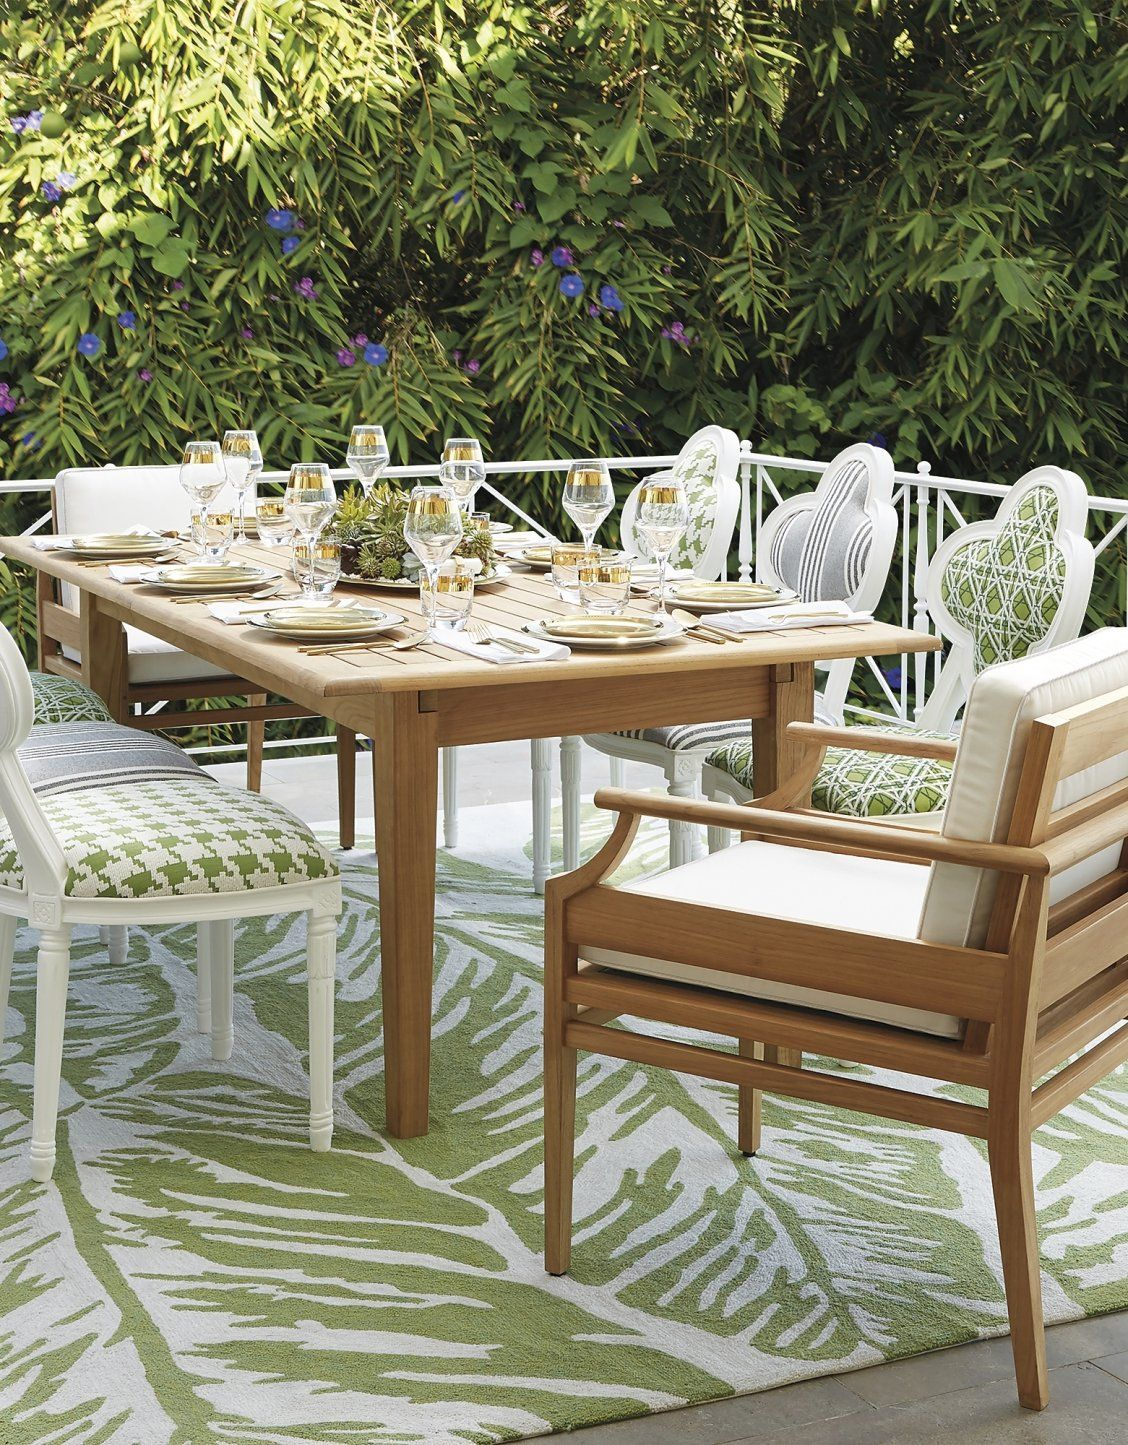 Inspired by classic garden style the whimsical quatrefoil outdoor dining chair features intricate handcarved details that were captured by the molds used